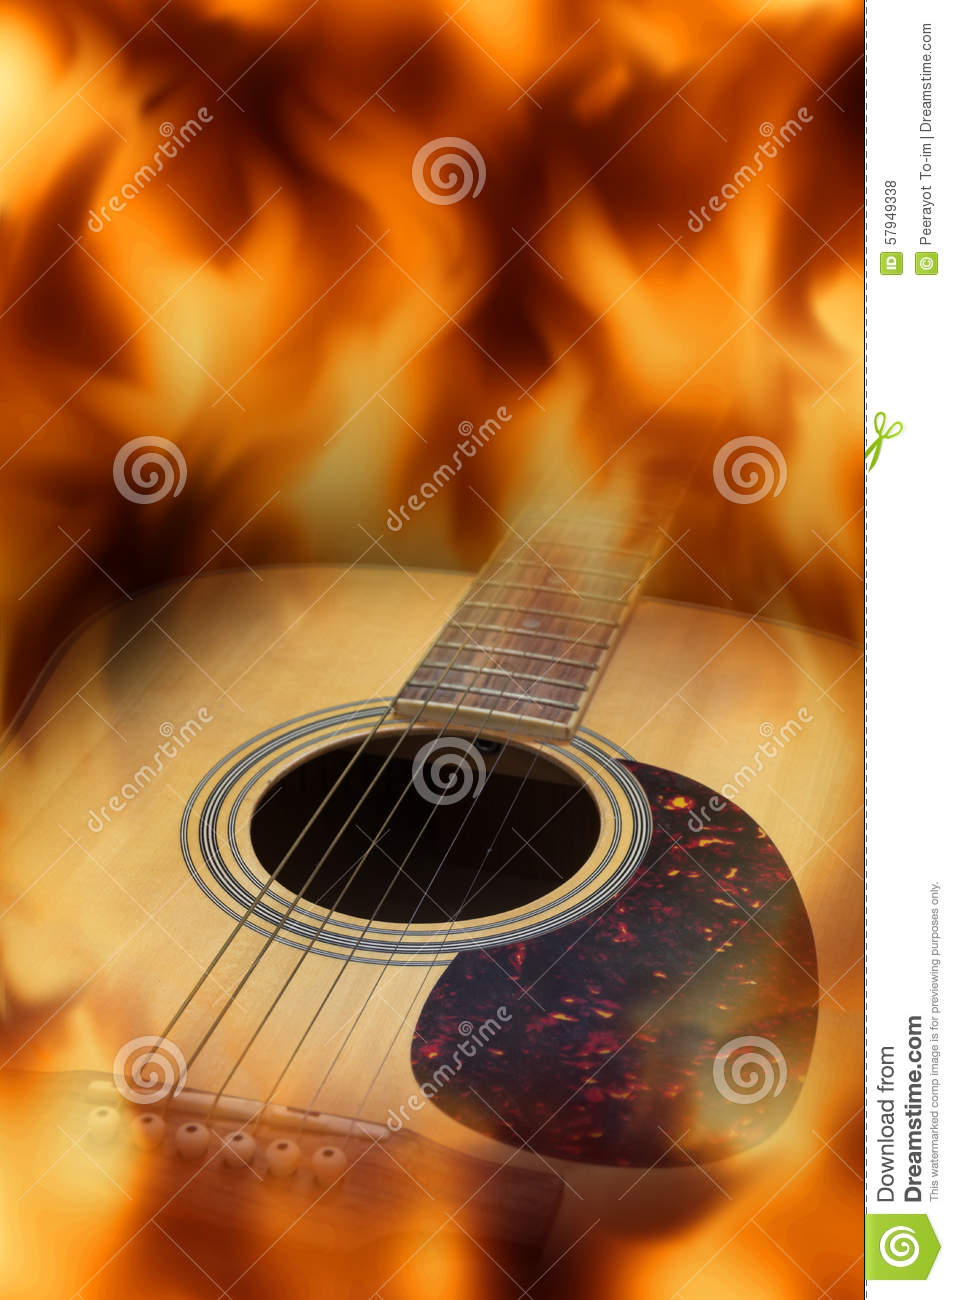 guitar acoustic fire flame - photo #12